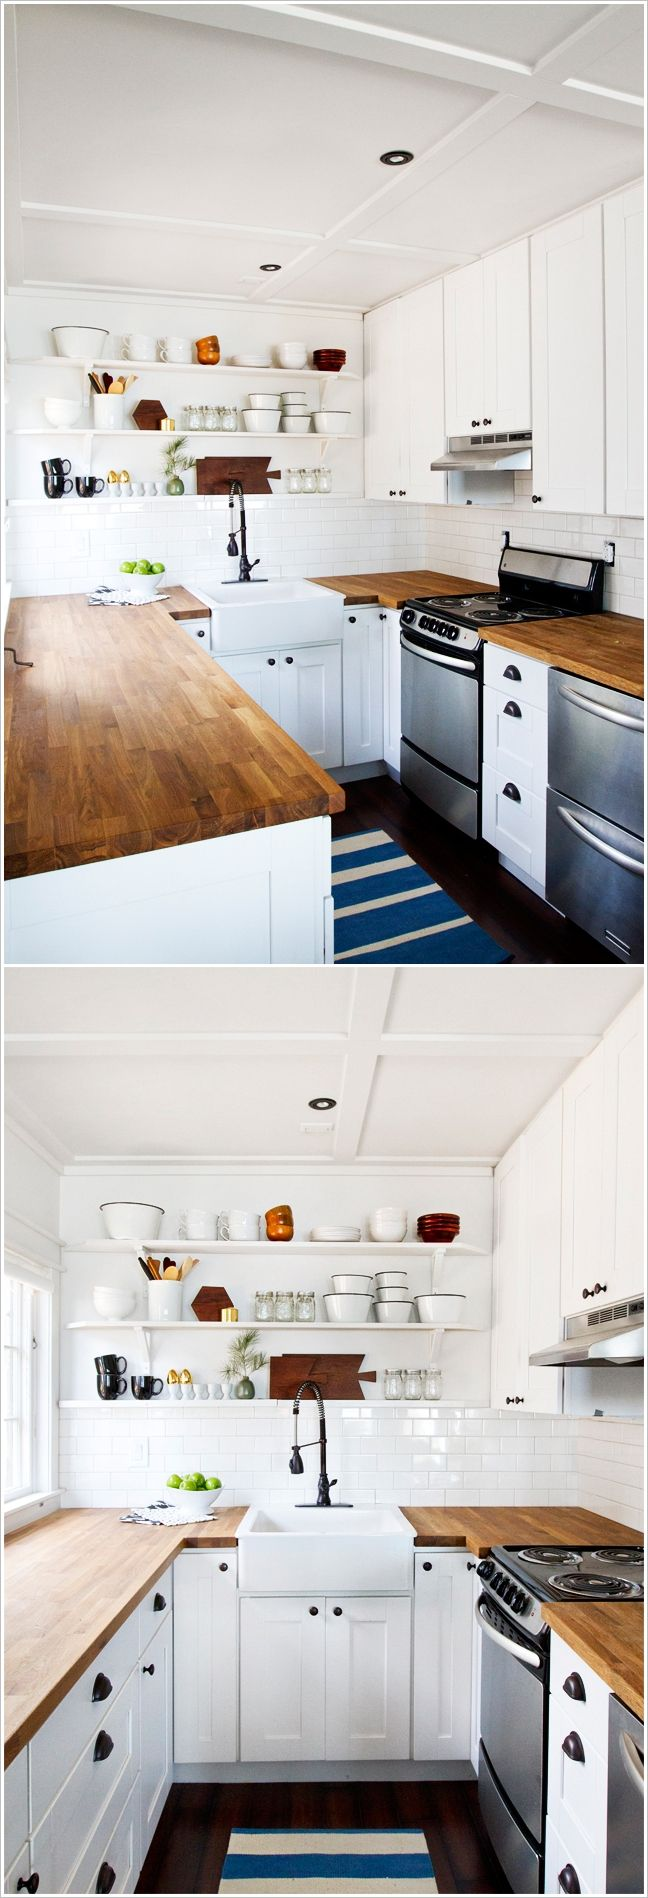 Best 25+ Beach House Kitchens Ideas On Pinterest | Beach House, Nautical  Style Kitchen Design And Nautical Style Kitchen Diy Part 77